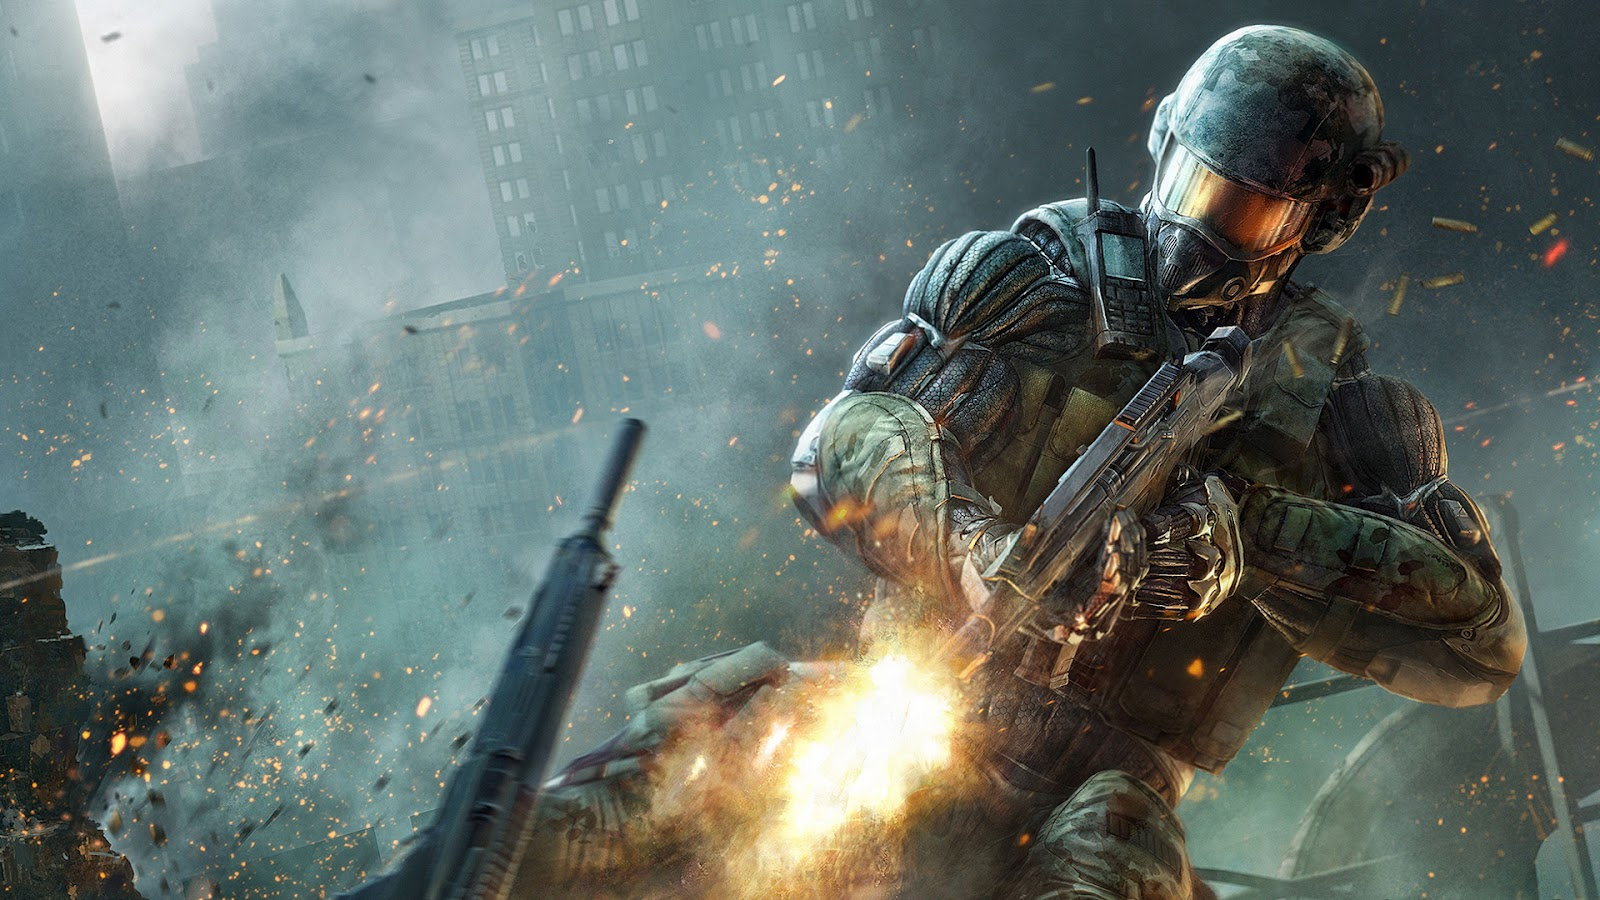 trololo blogg crysis 2 hd wallpaper 1080p